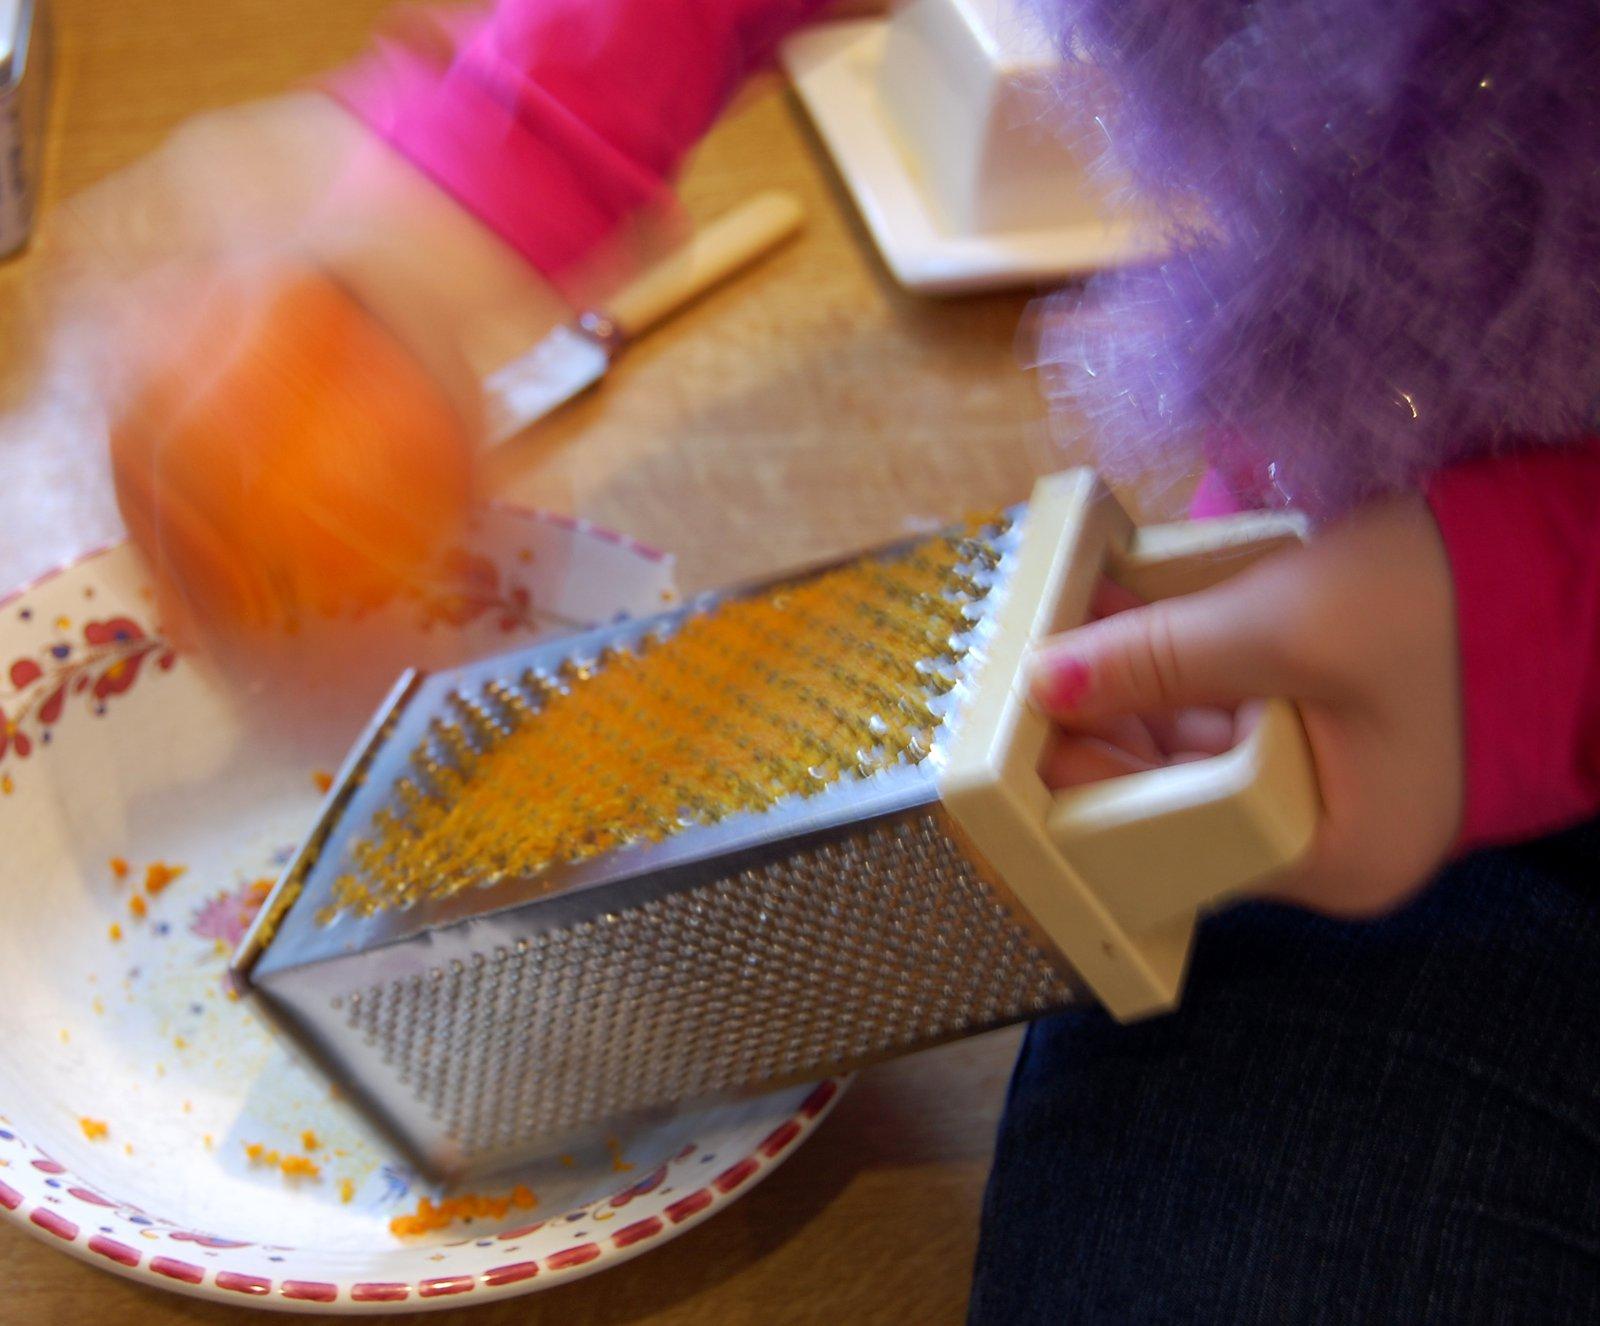 Grating an orange